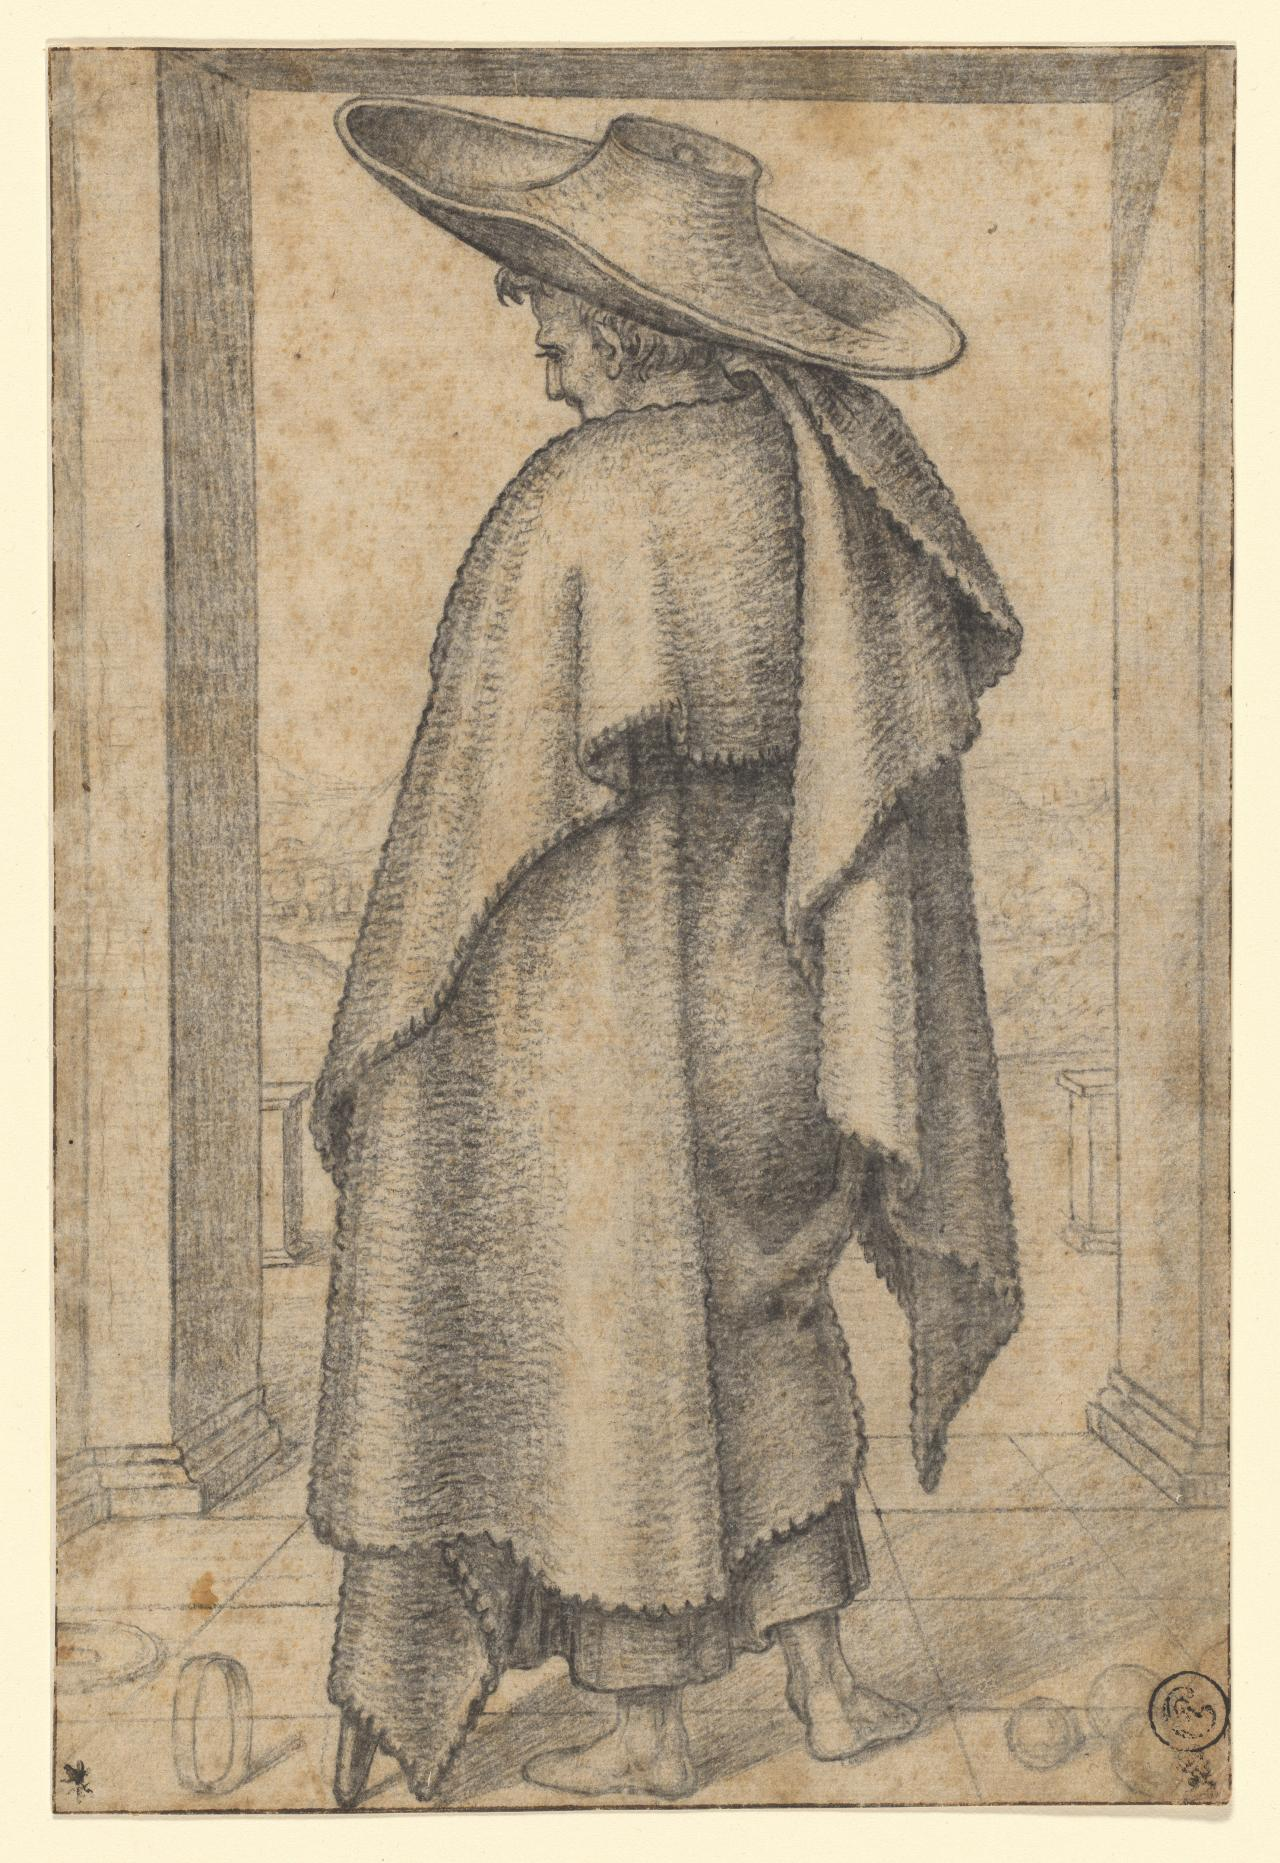 Man in a large hat